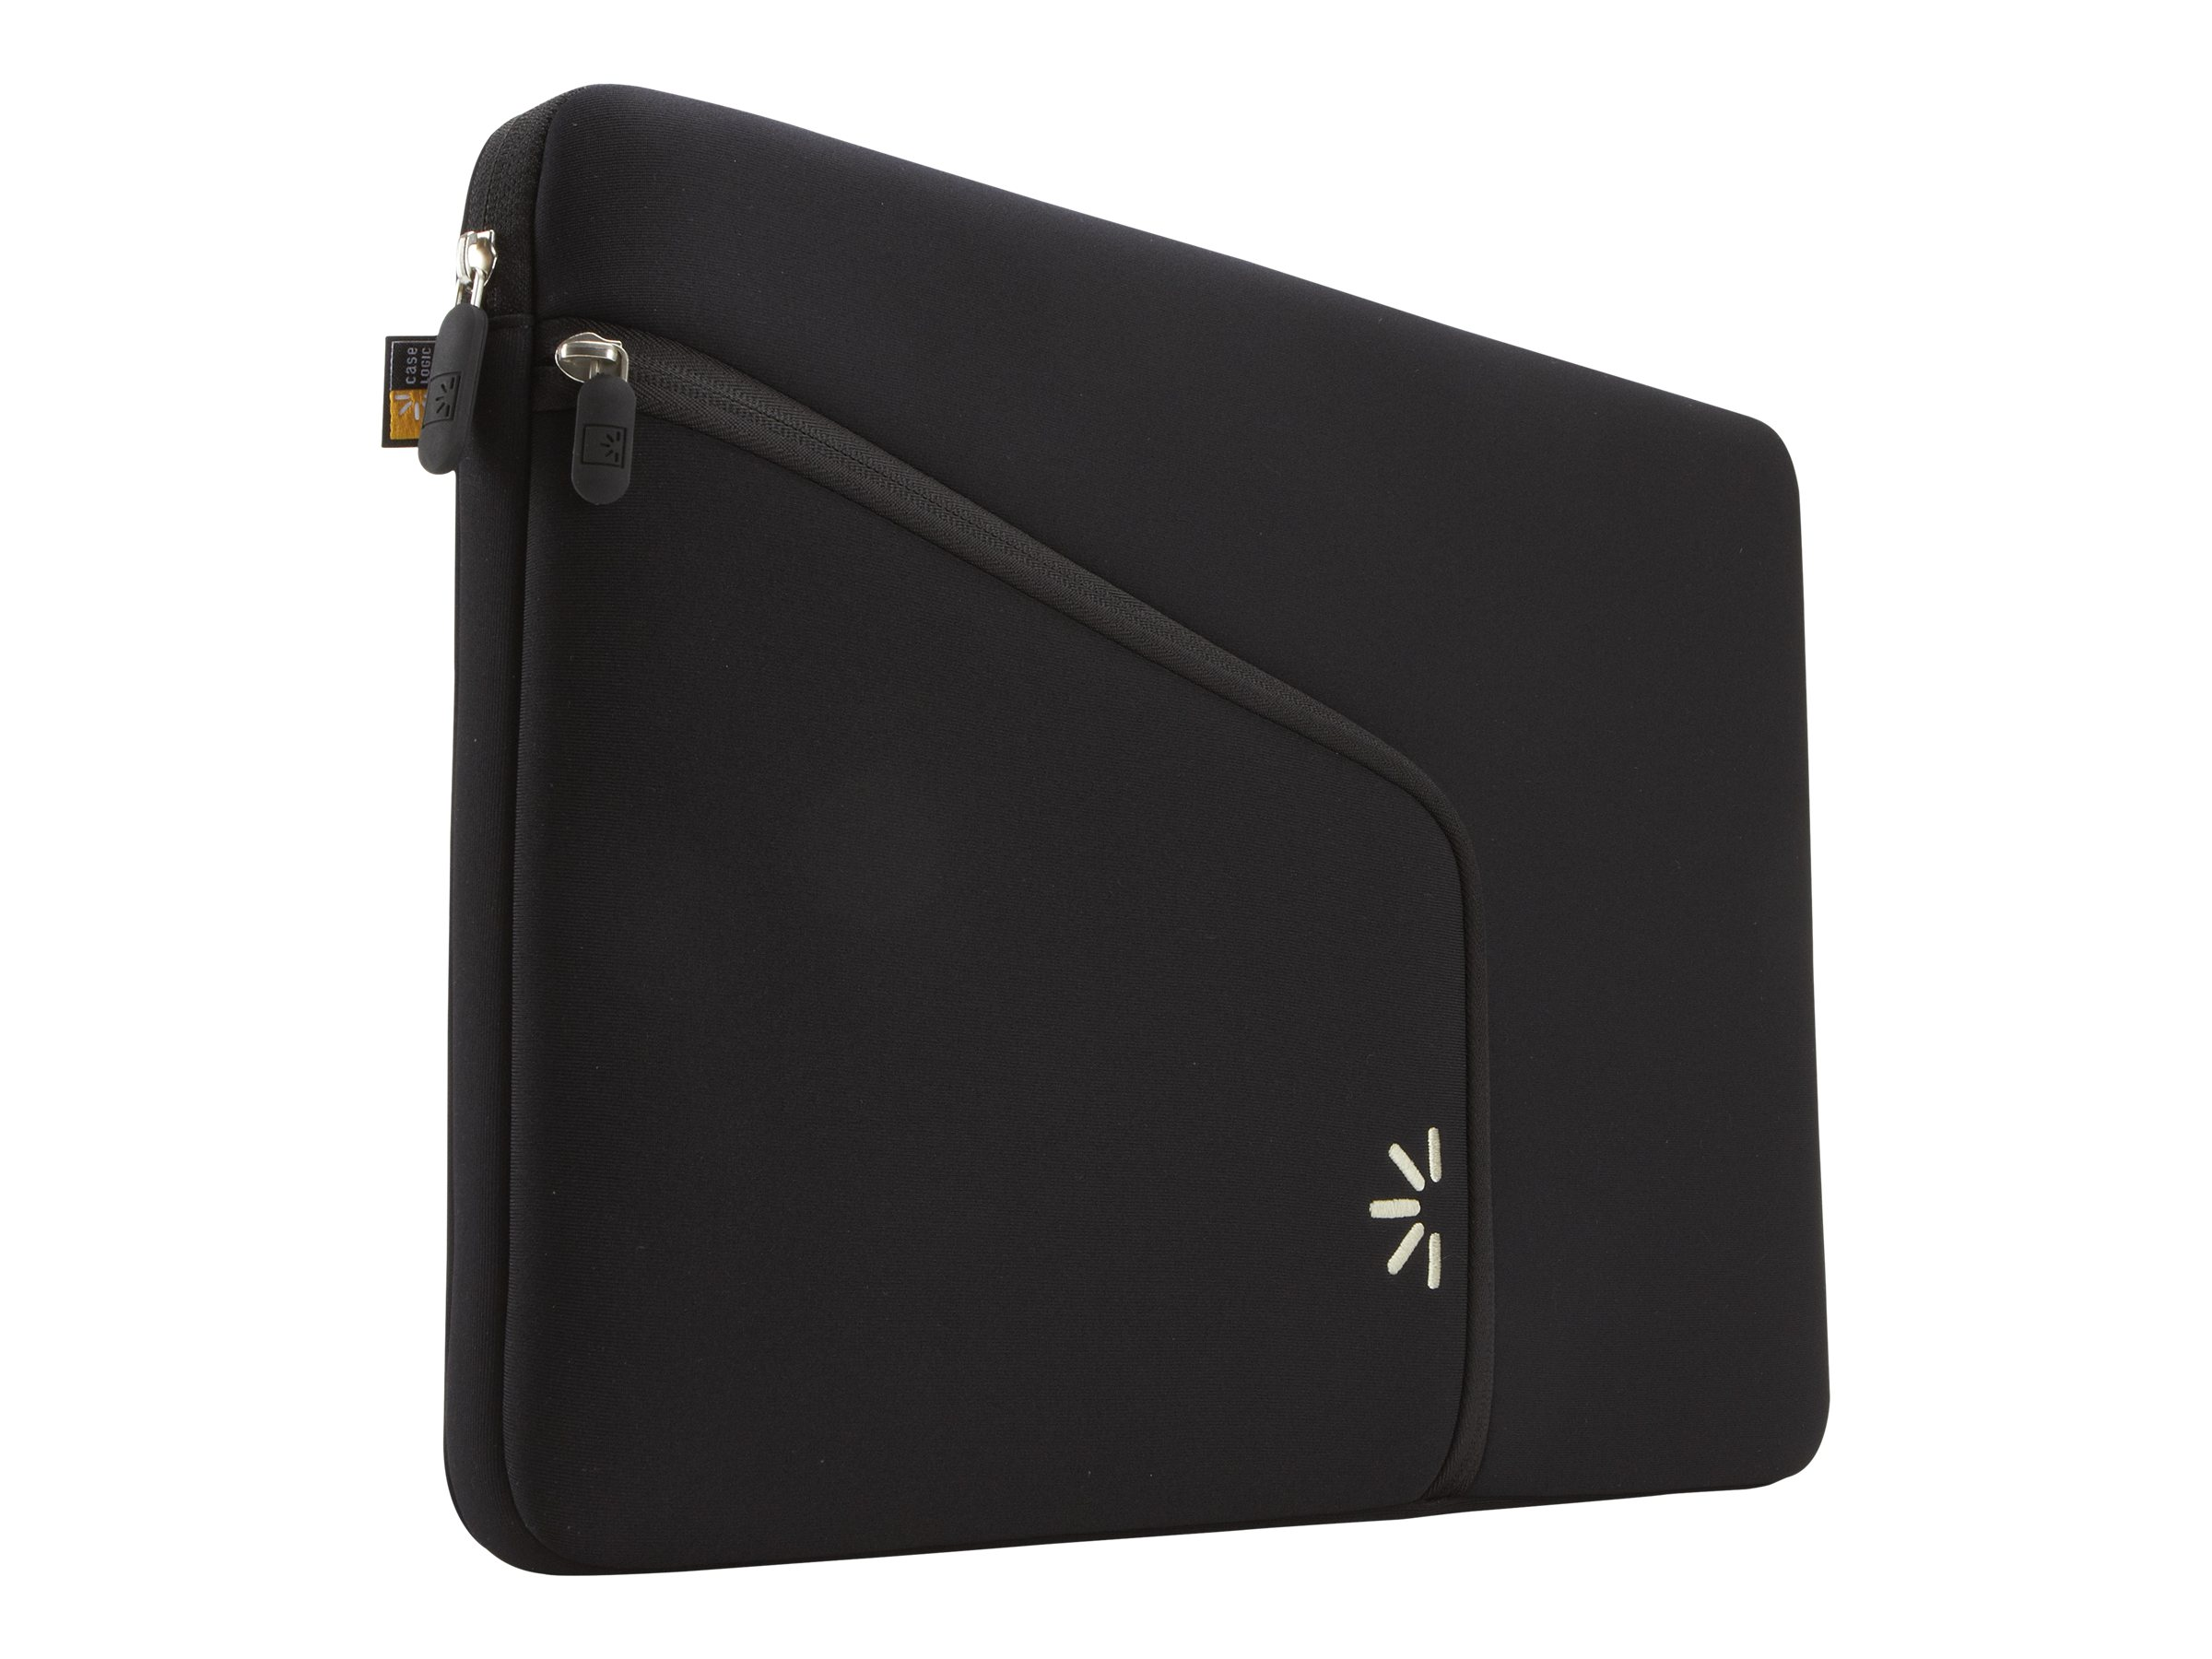 Case Logic 15 MacBook Pro Sleeve, Black, PAS-215BLACK, 10903115, Protective & Dust Covers